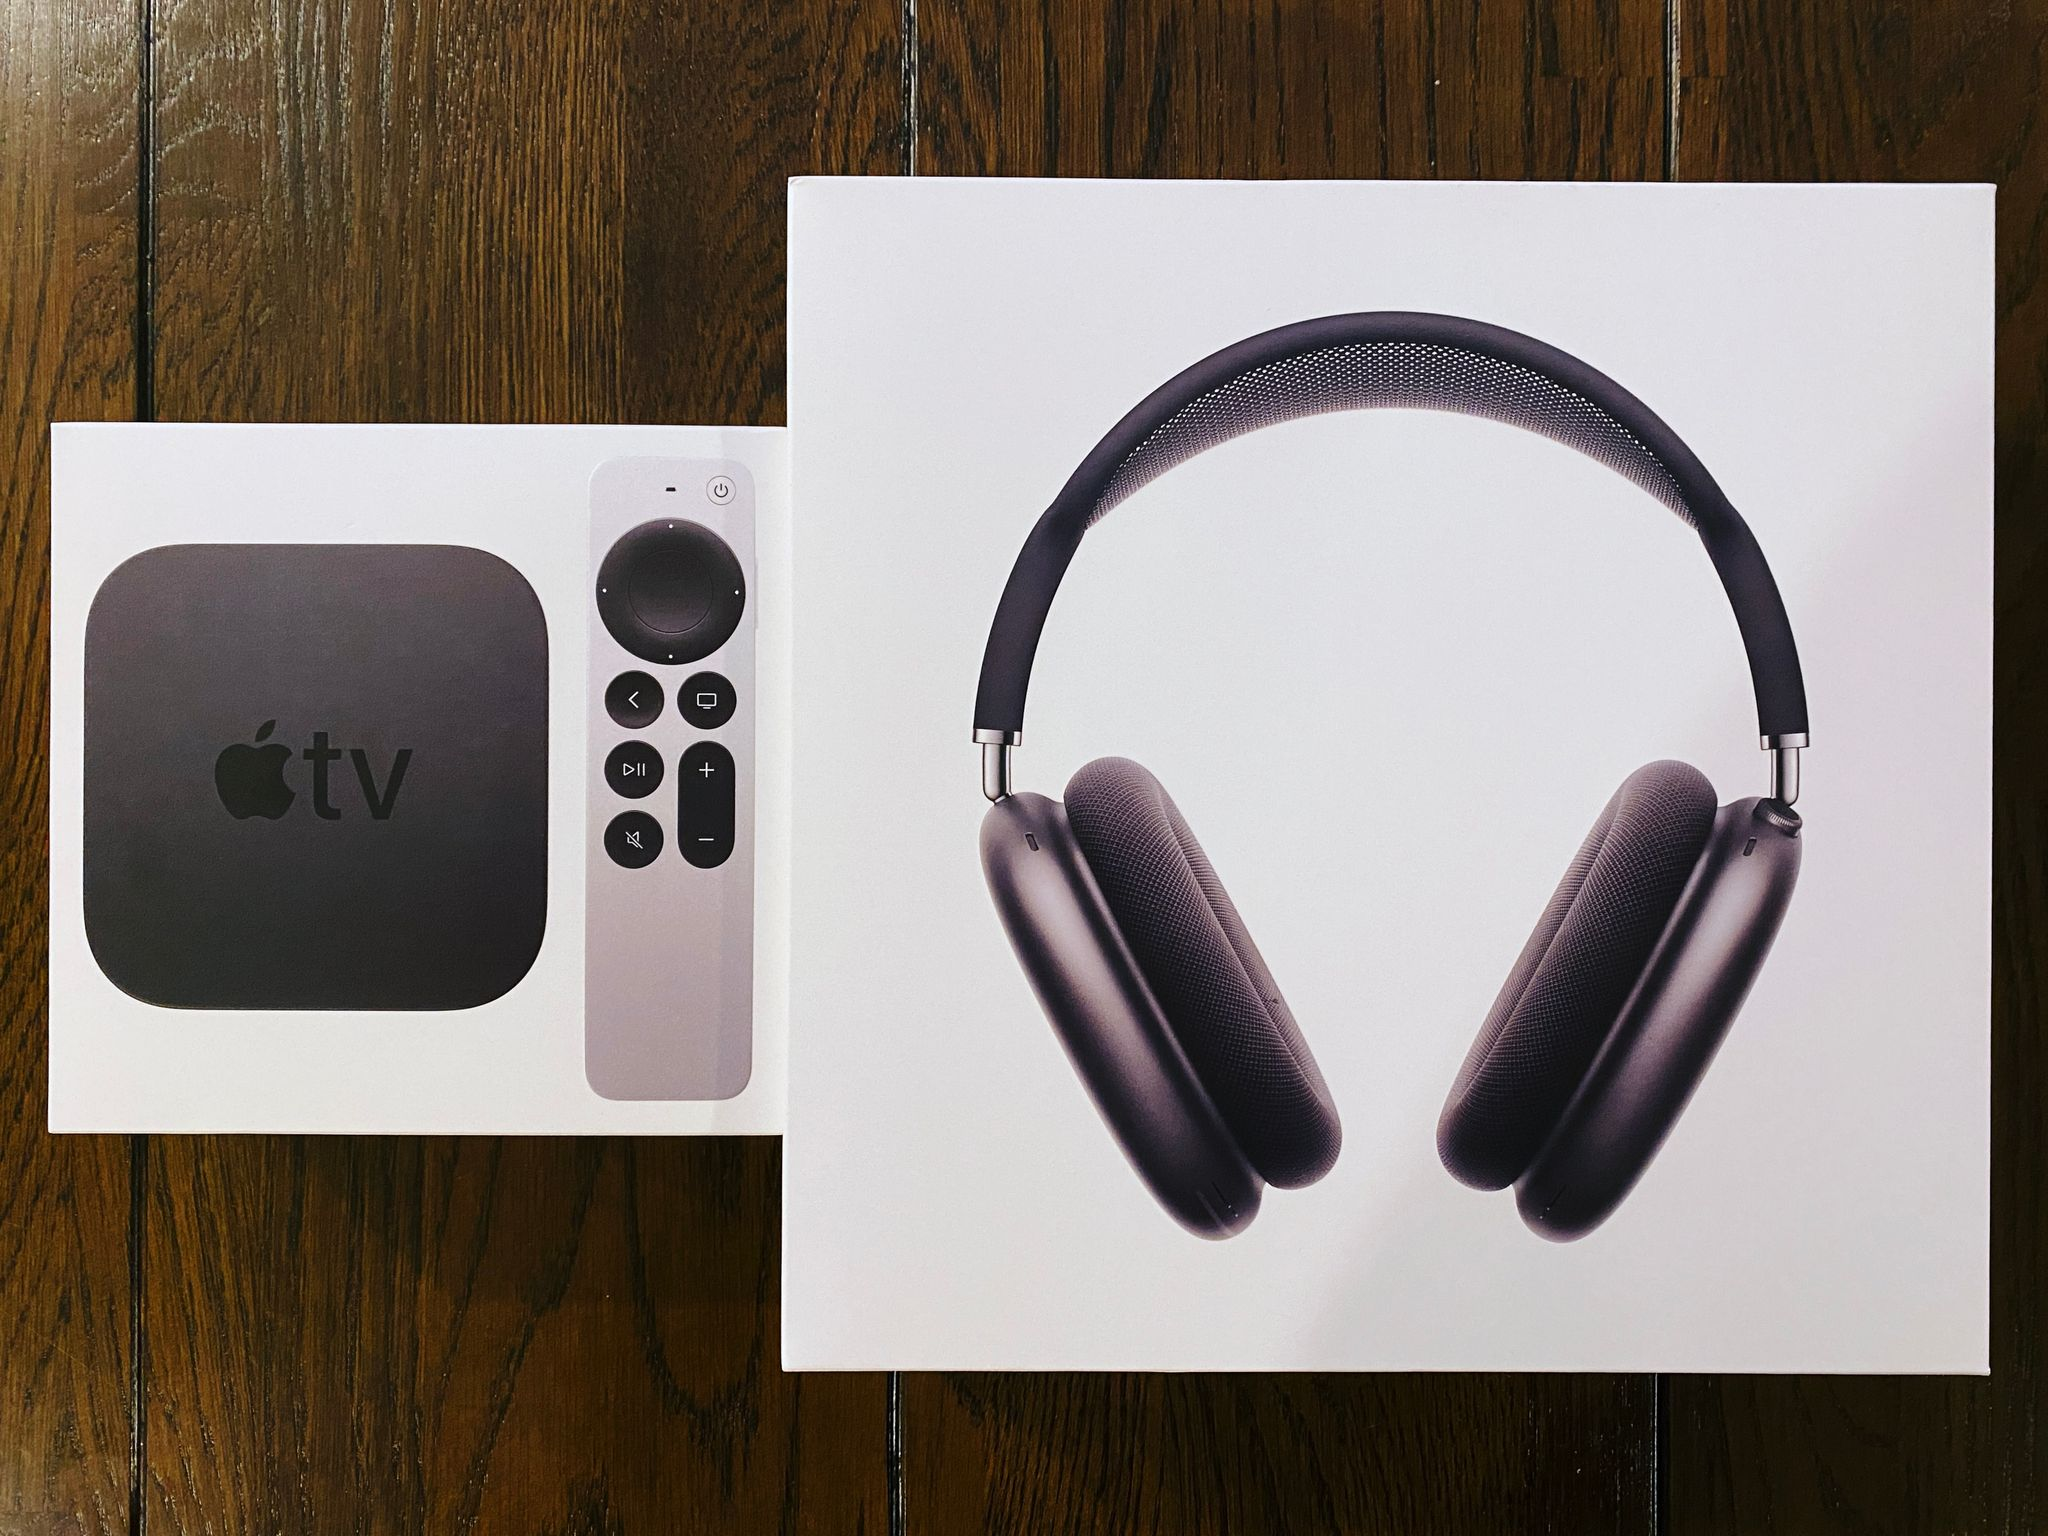 A photo of the box of an Apple TV 4K and AirPods Max in Space Grey.